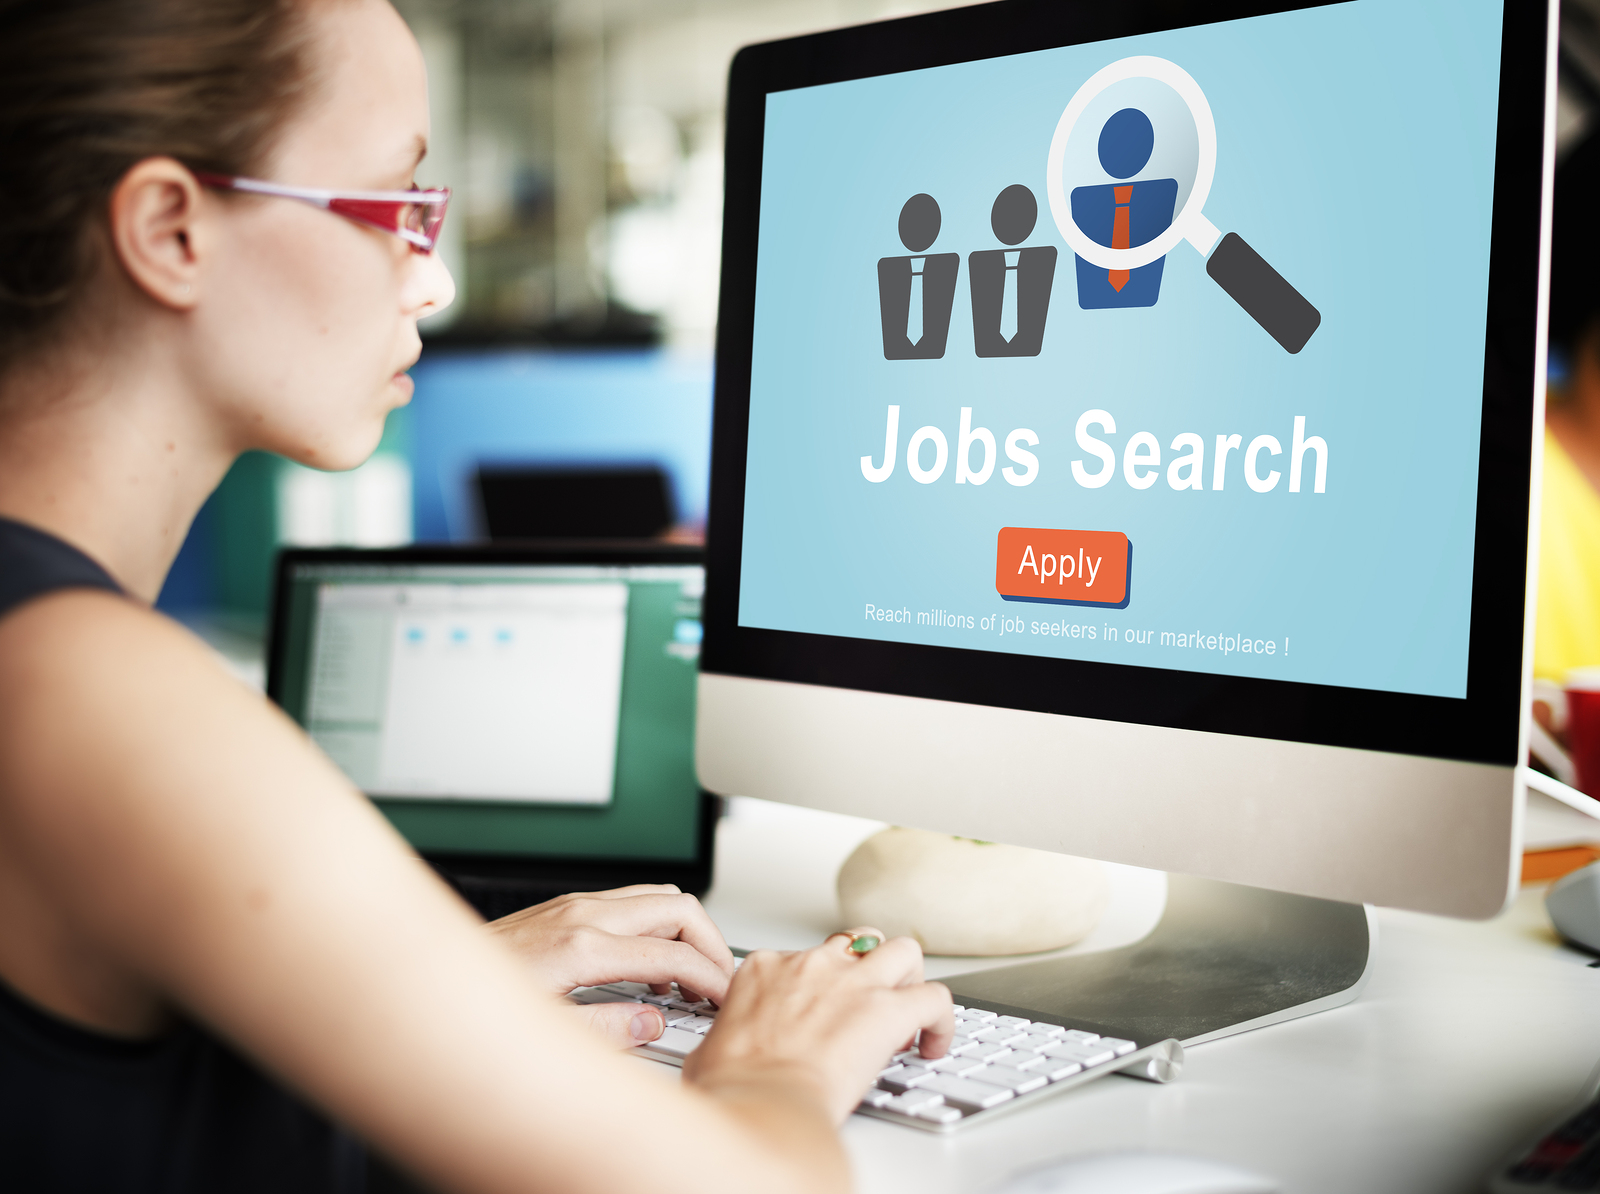 Job Search and the Internet